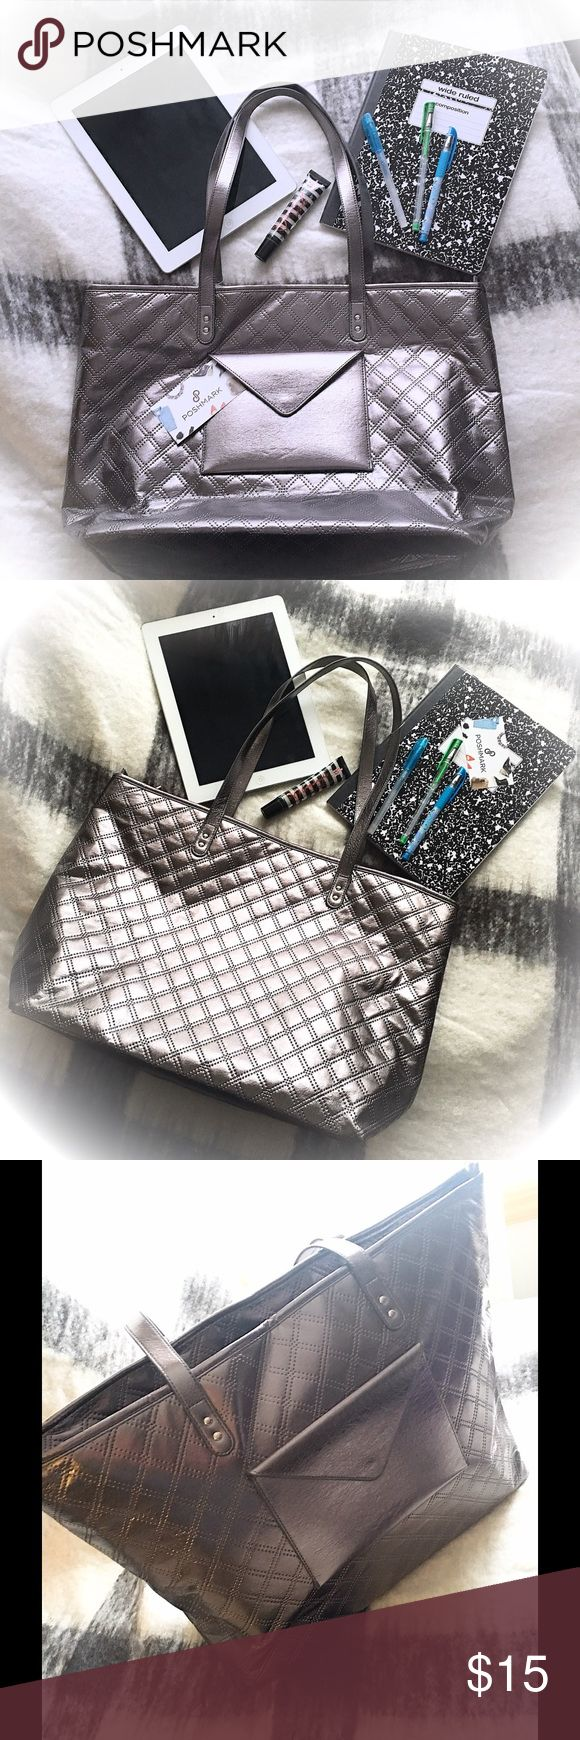 """Gorgeous Silver Tote Bag NWOT ~ Gorgeous Silver Tote Bag. 11.5⬆️x18↔️x6↕️ 10"""" double shoulder strap hang. Zip closure. Great for an on the go job. Fits laptops and tablets nicely. The exterior pocket is handy for holding stash cash for tips or business cards.  TRADES️️ MAKE A REASONABLE OFFER Bags Totes"""